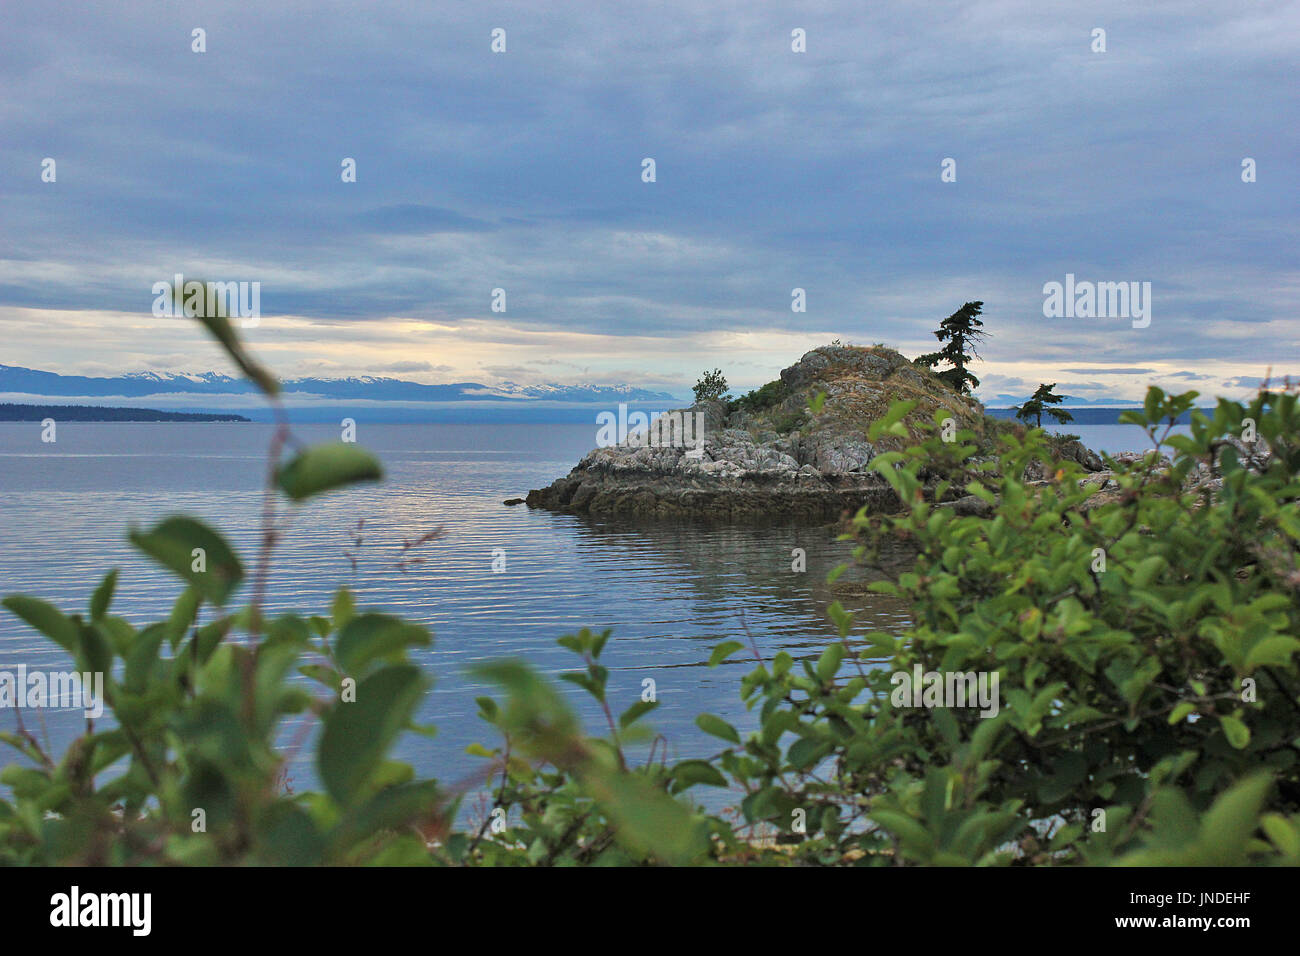 Sunset over Vancouver Island from Lund on British Columbia's remote Sunshine Coast - Stock Image